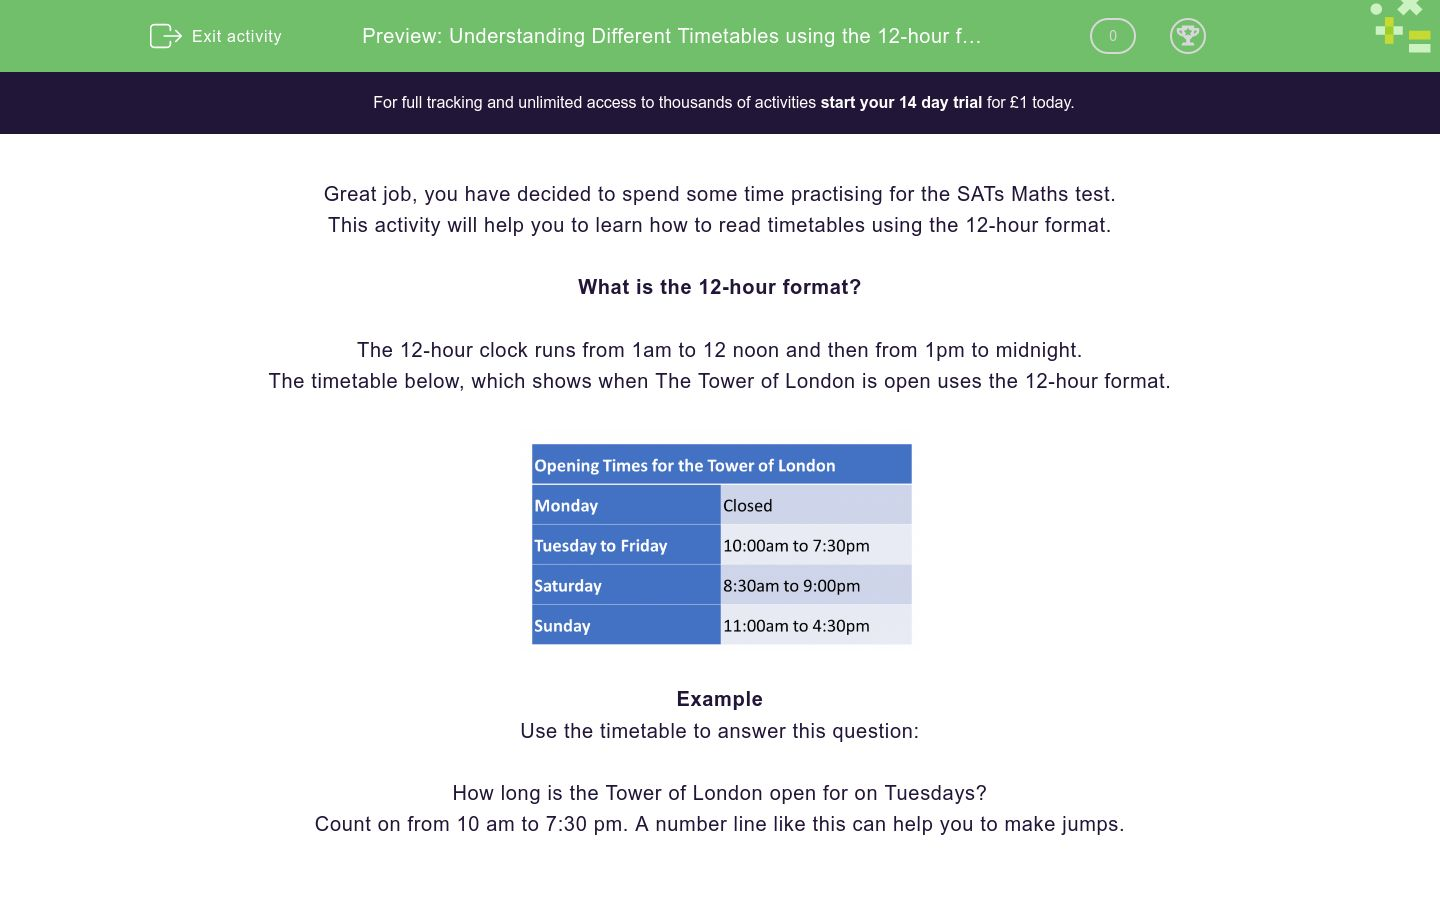 'Understanding Different Timetables using the 12-hour format' worksheet